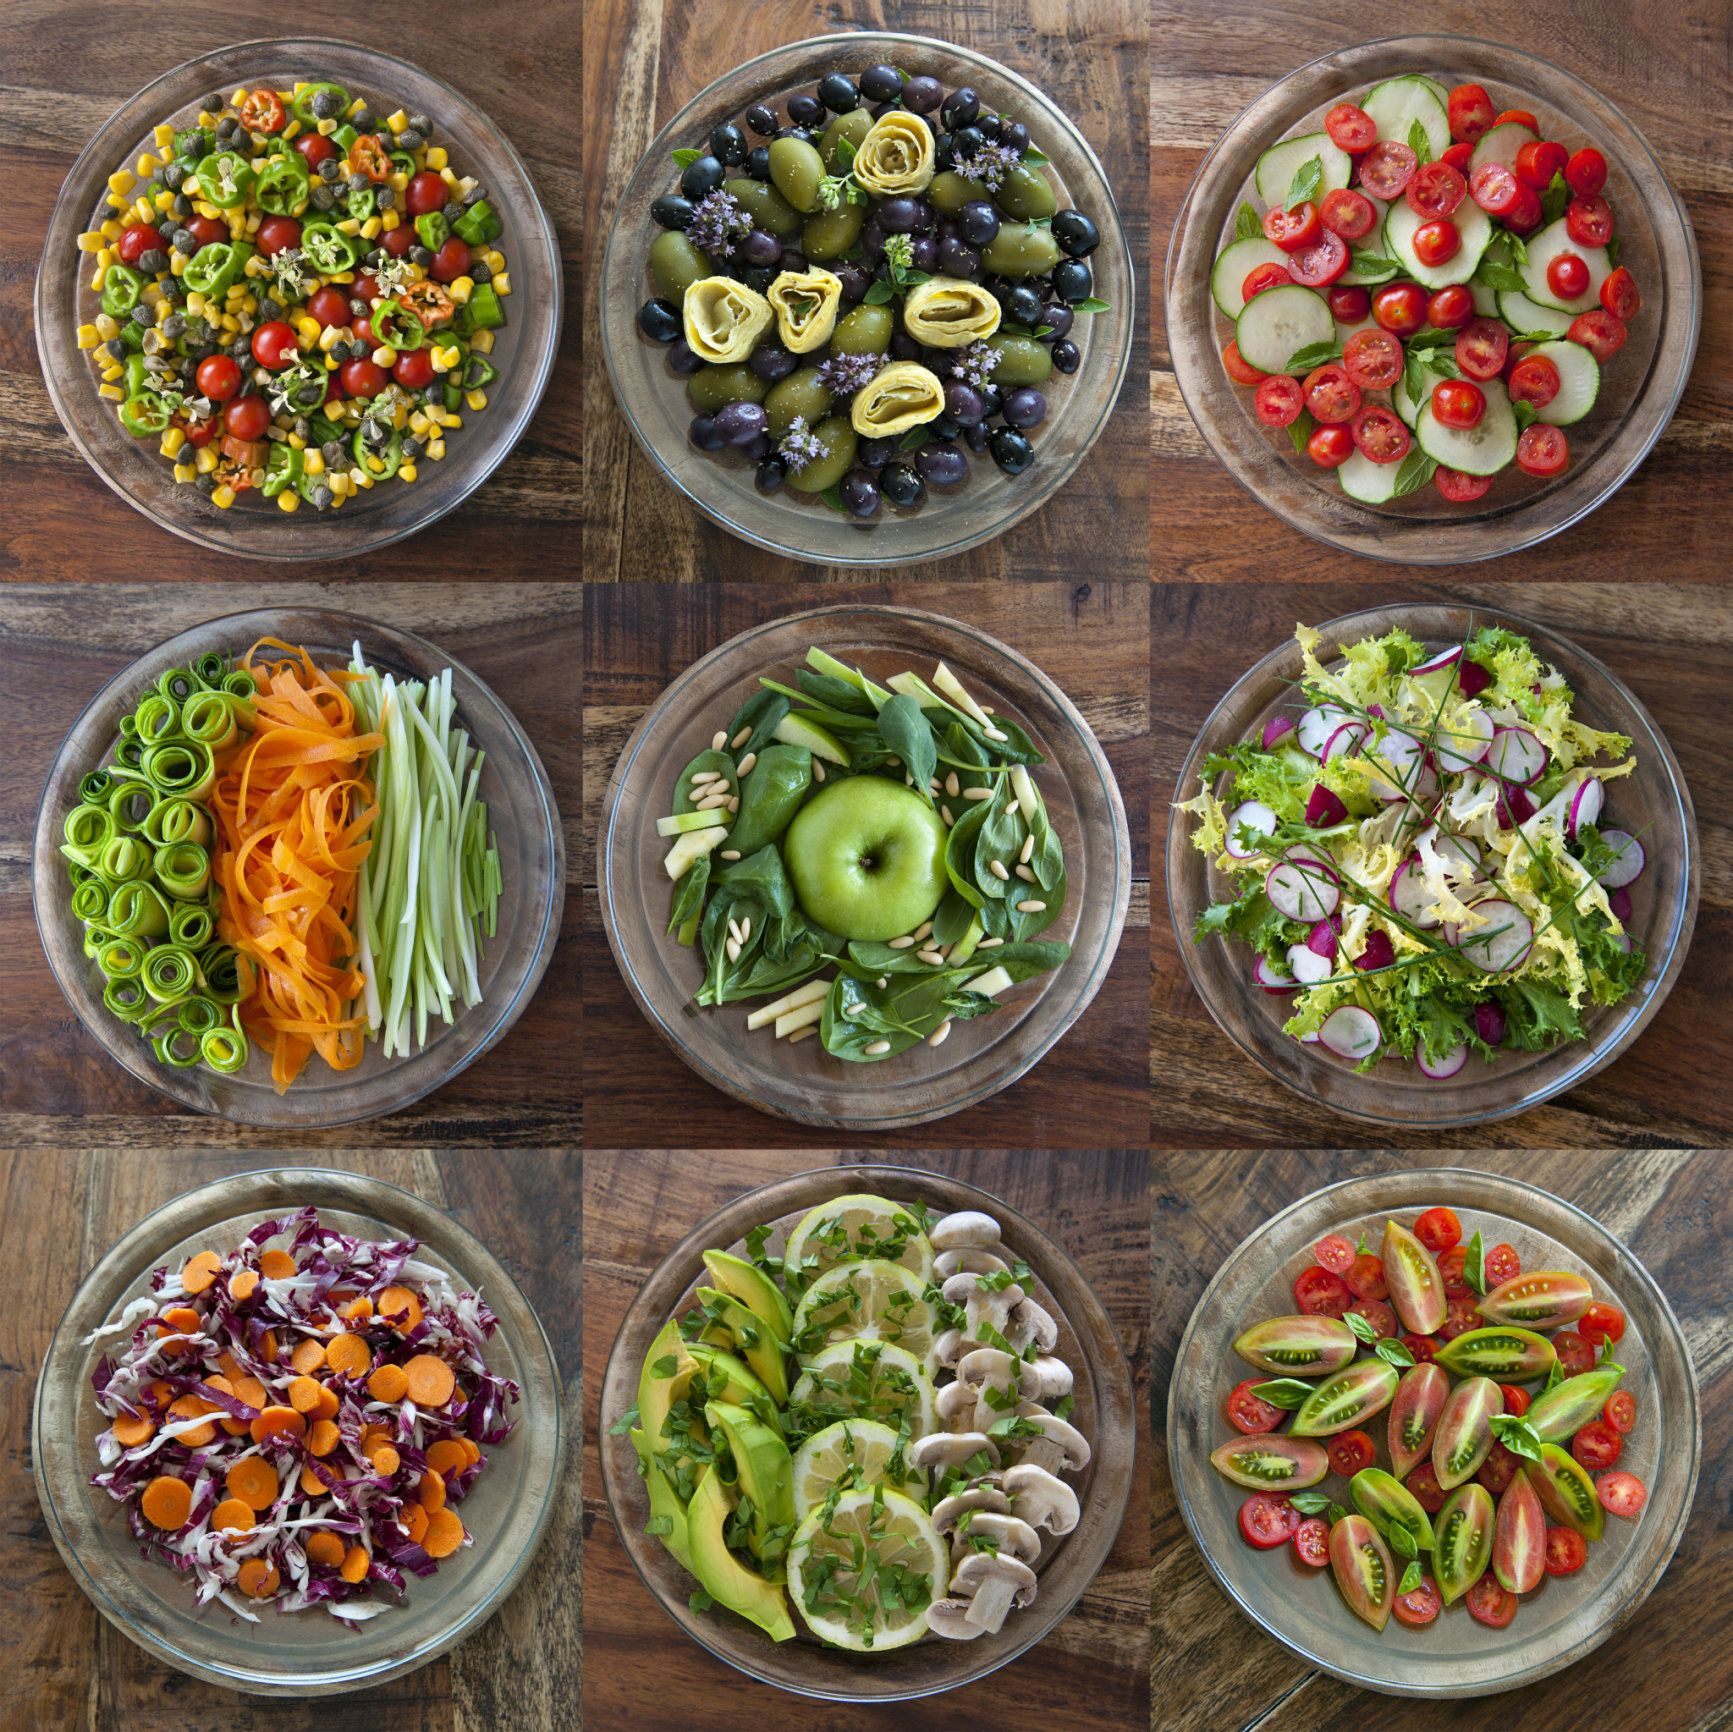 Mediterranean salads: carrots, tomatoes, radicchio, radishes, olives, corn, celery, mushrooms, avocado, spinach, smith apple, pine nuts, chives, basil, zucchini, endive